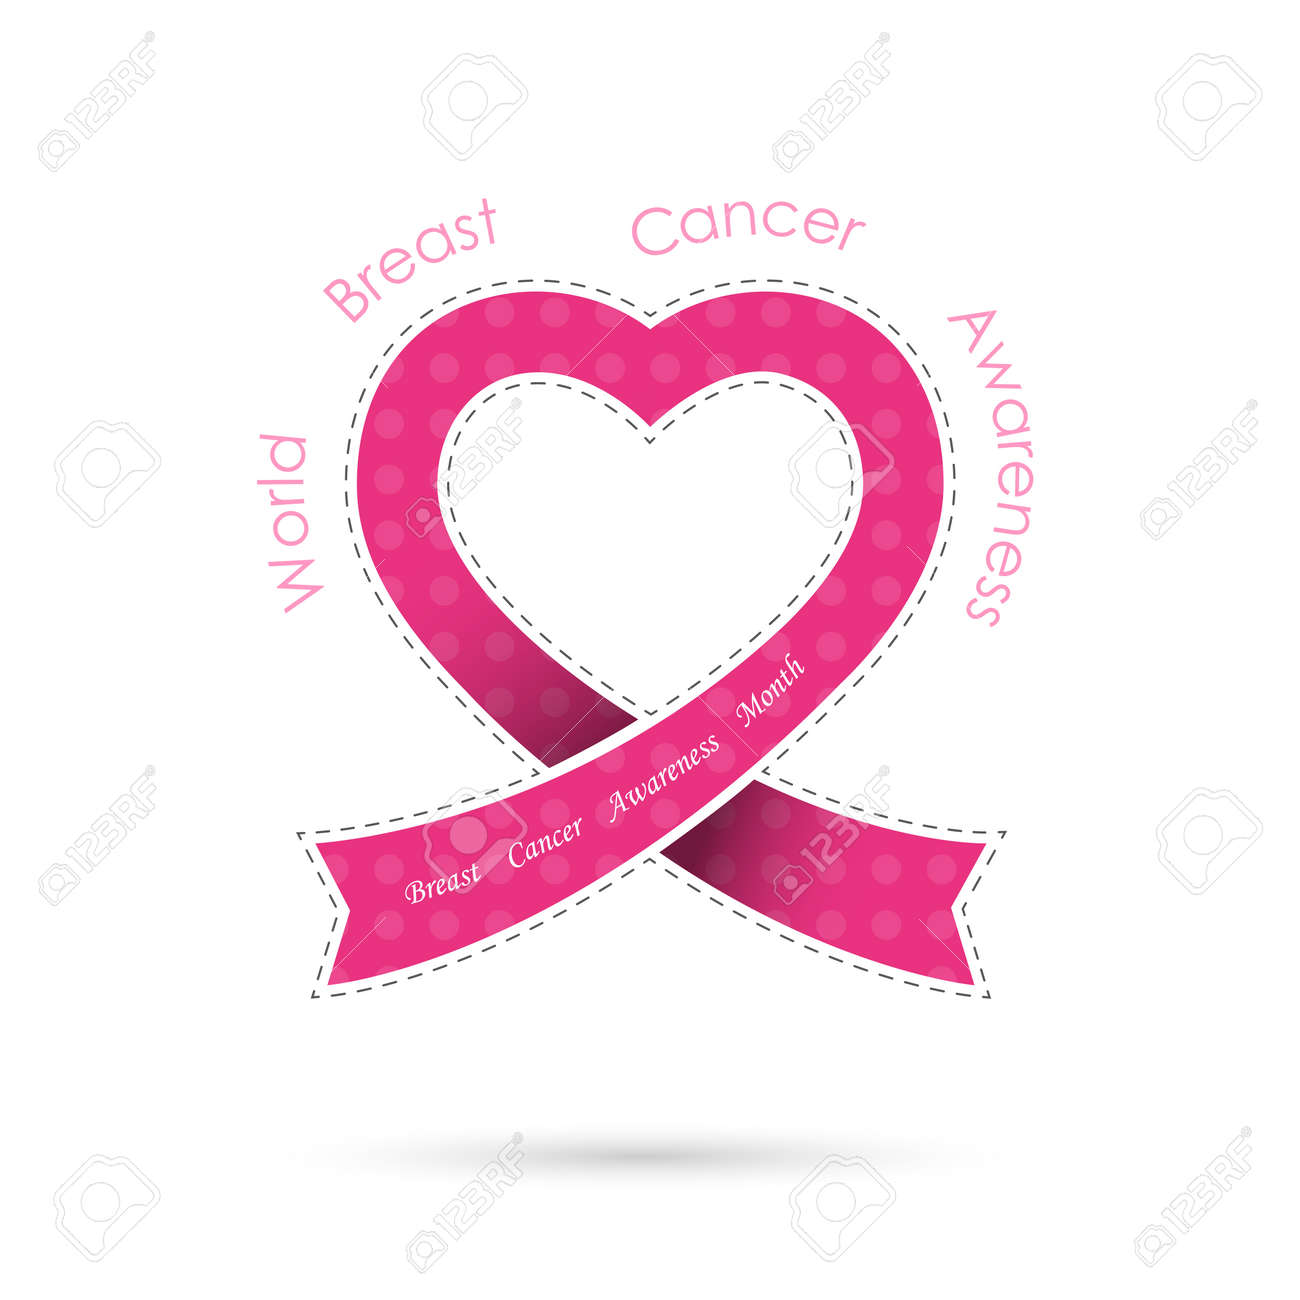 63f205337cd Pink heart ribon sign.Breast cancer awareness logo design.Breast..